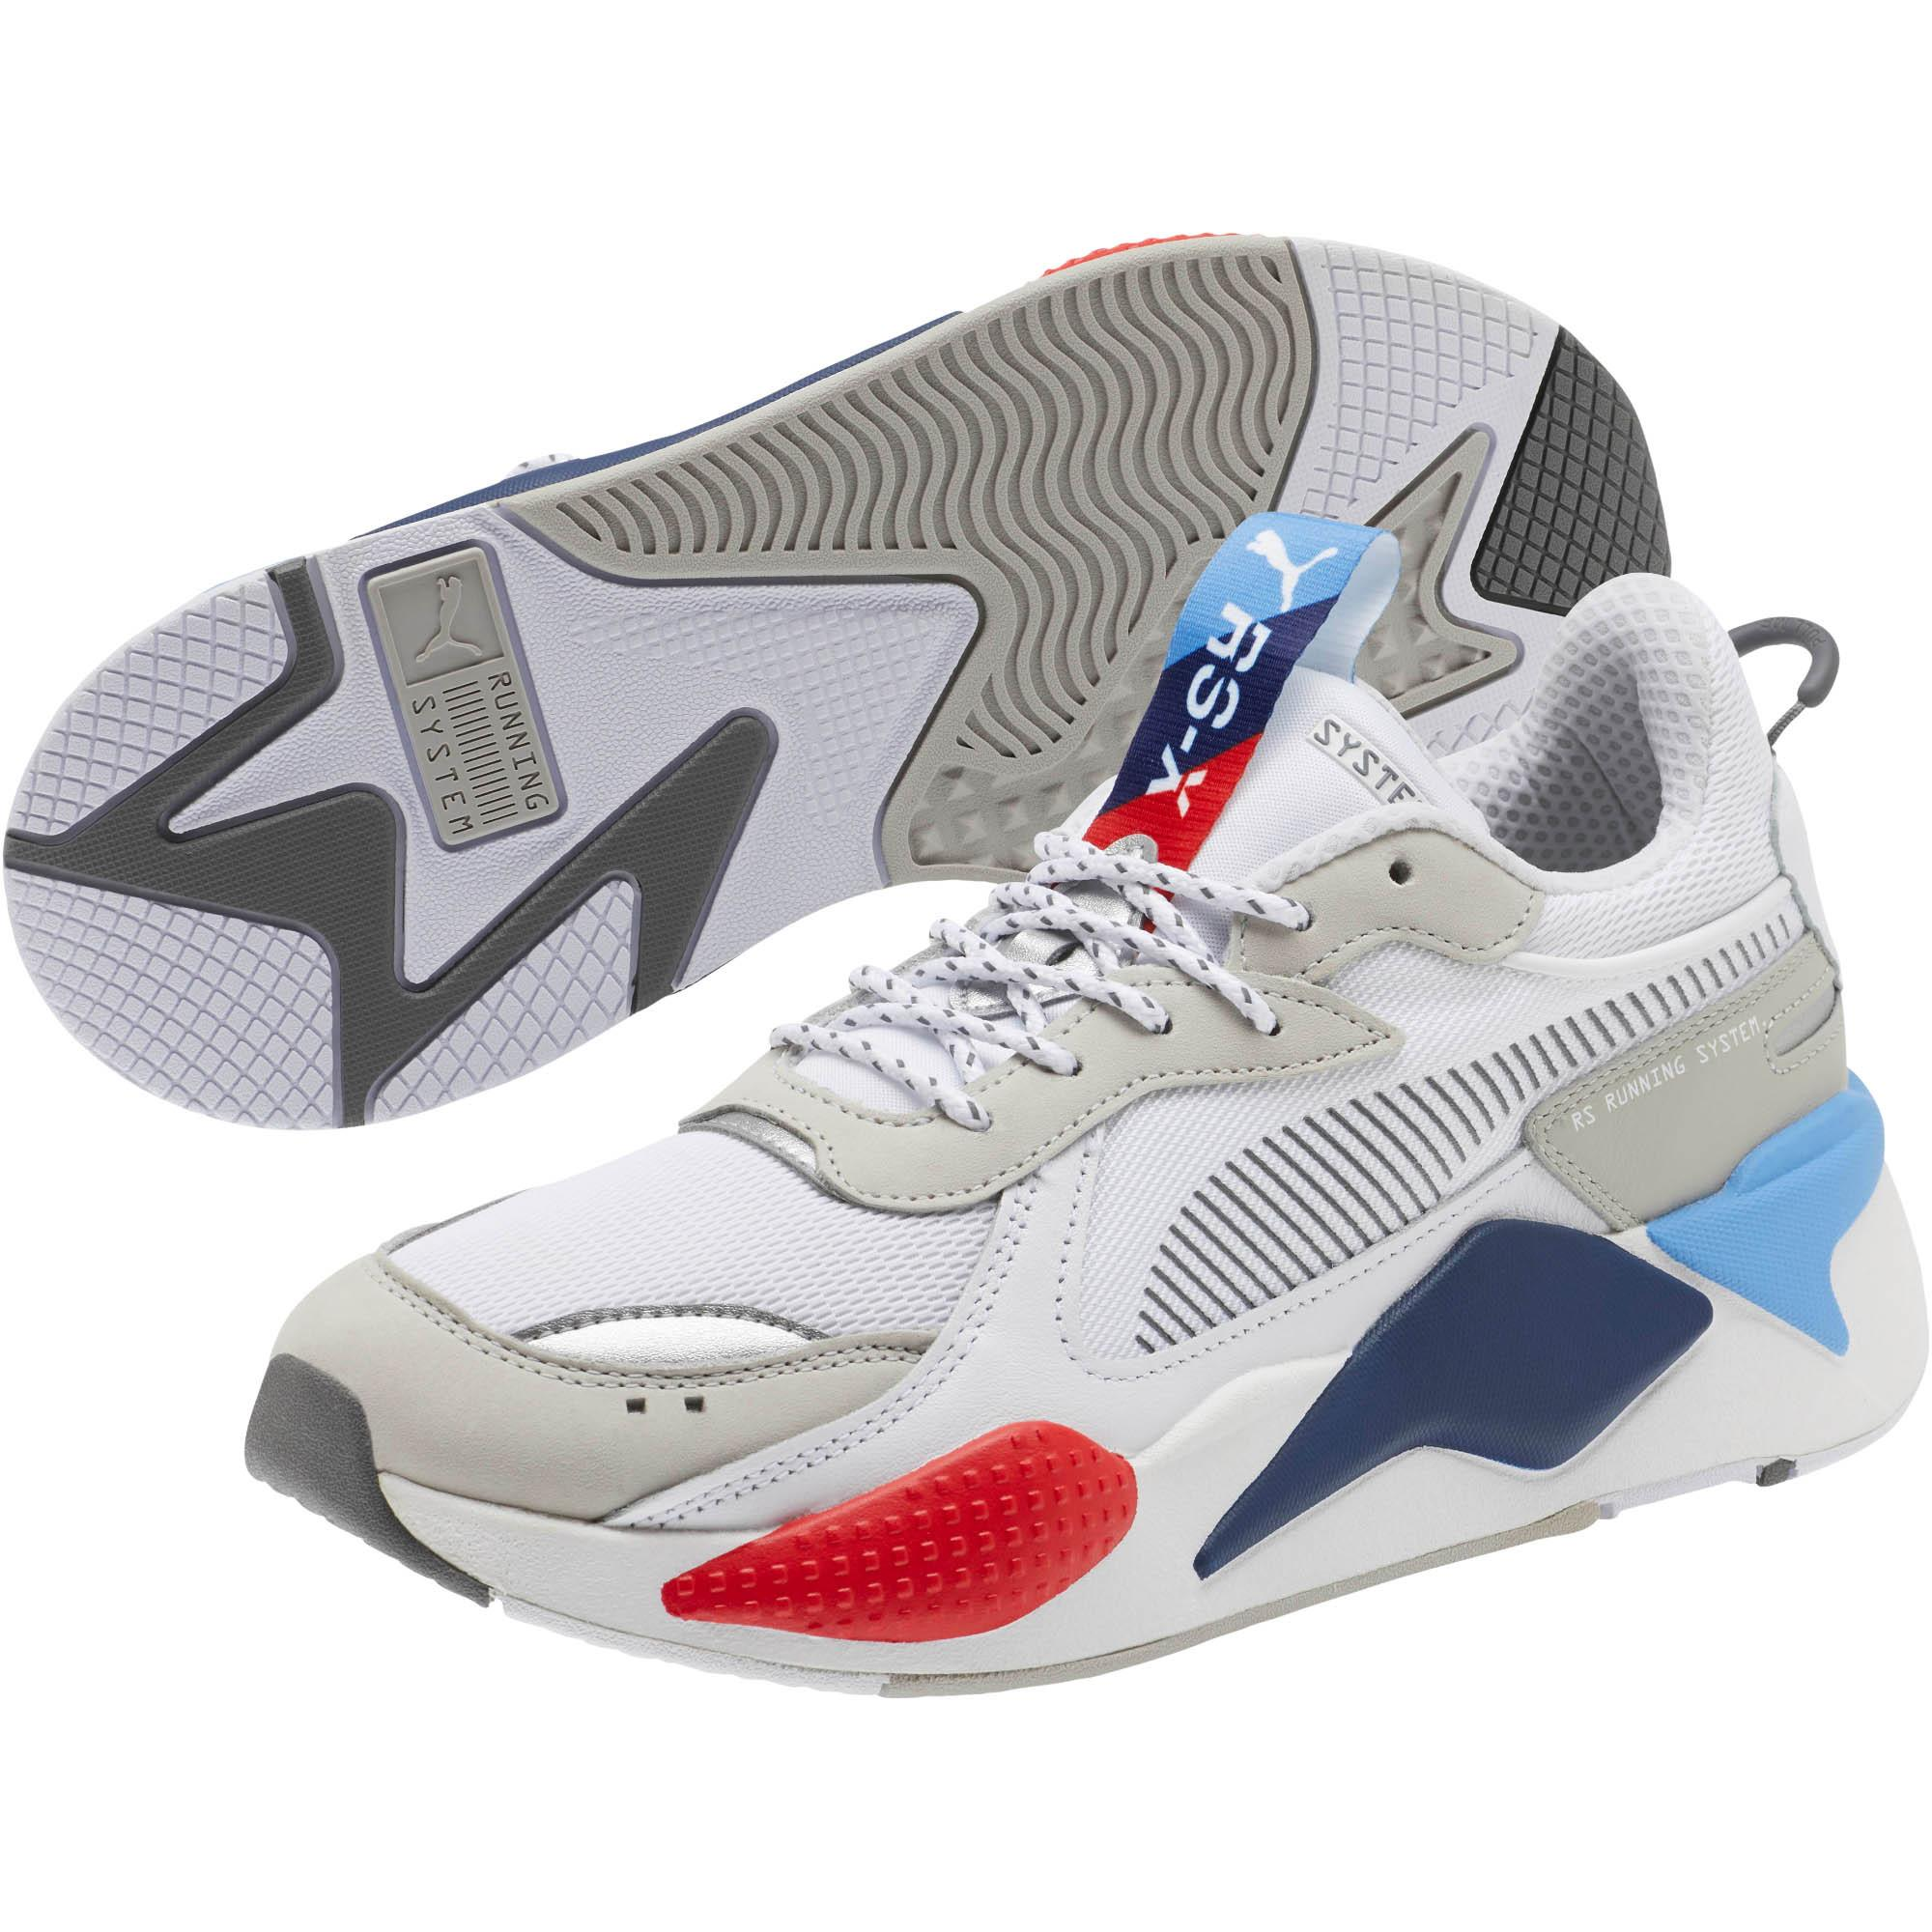 PUMA Leather Rs-x Bmw Mms Sneakers in White for Men - Lyst